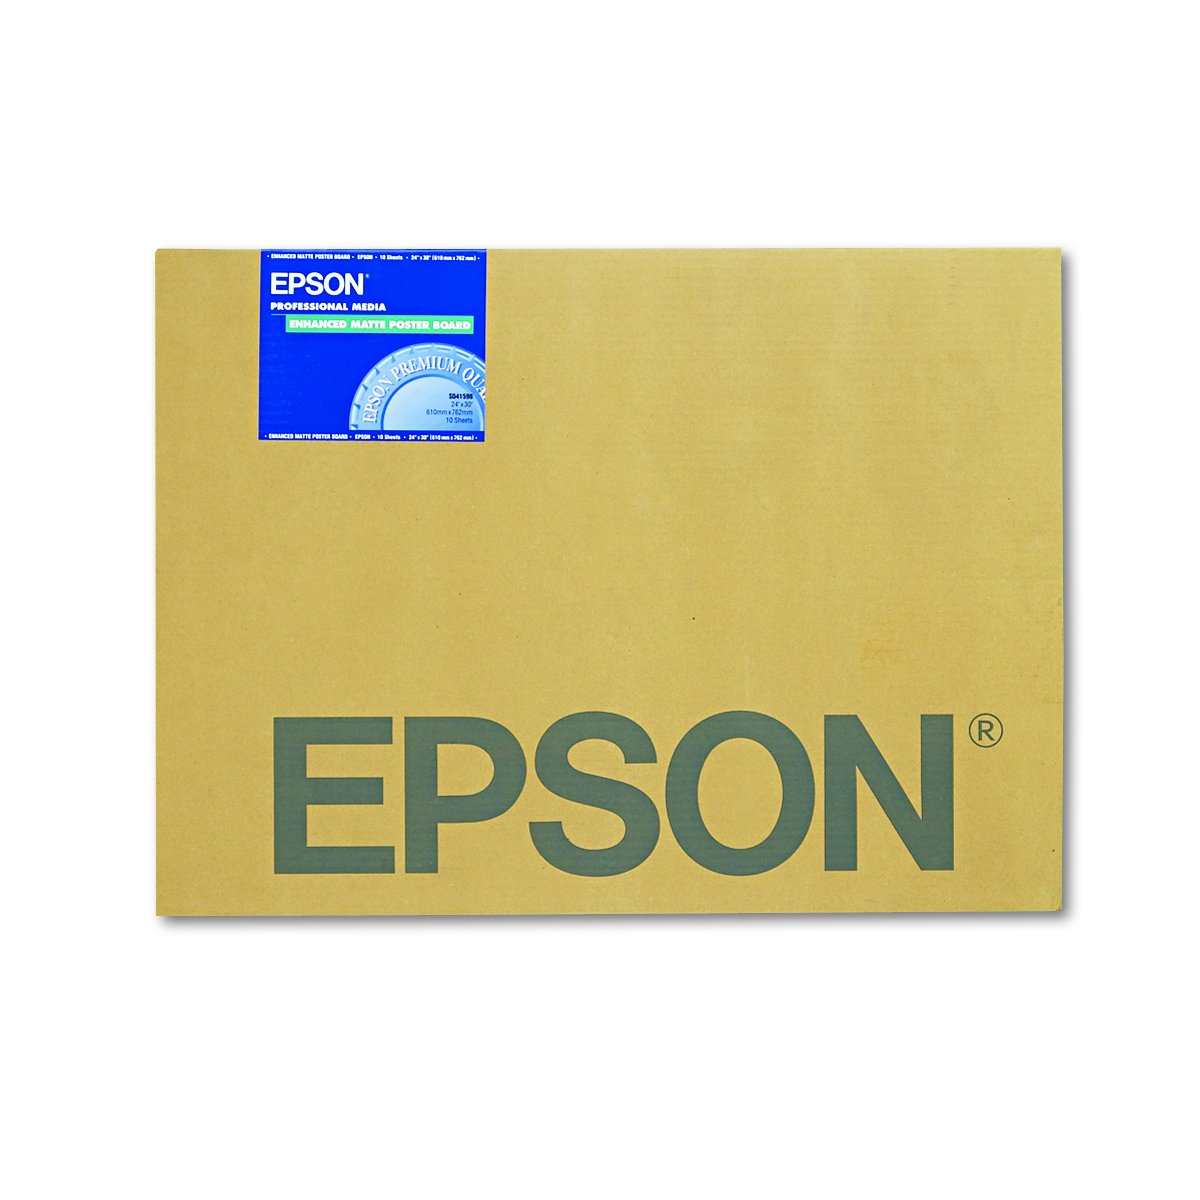 Epson S041598 Enhanced Matte Posterboard, 30 x 24, White (Pack of 10)